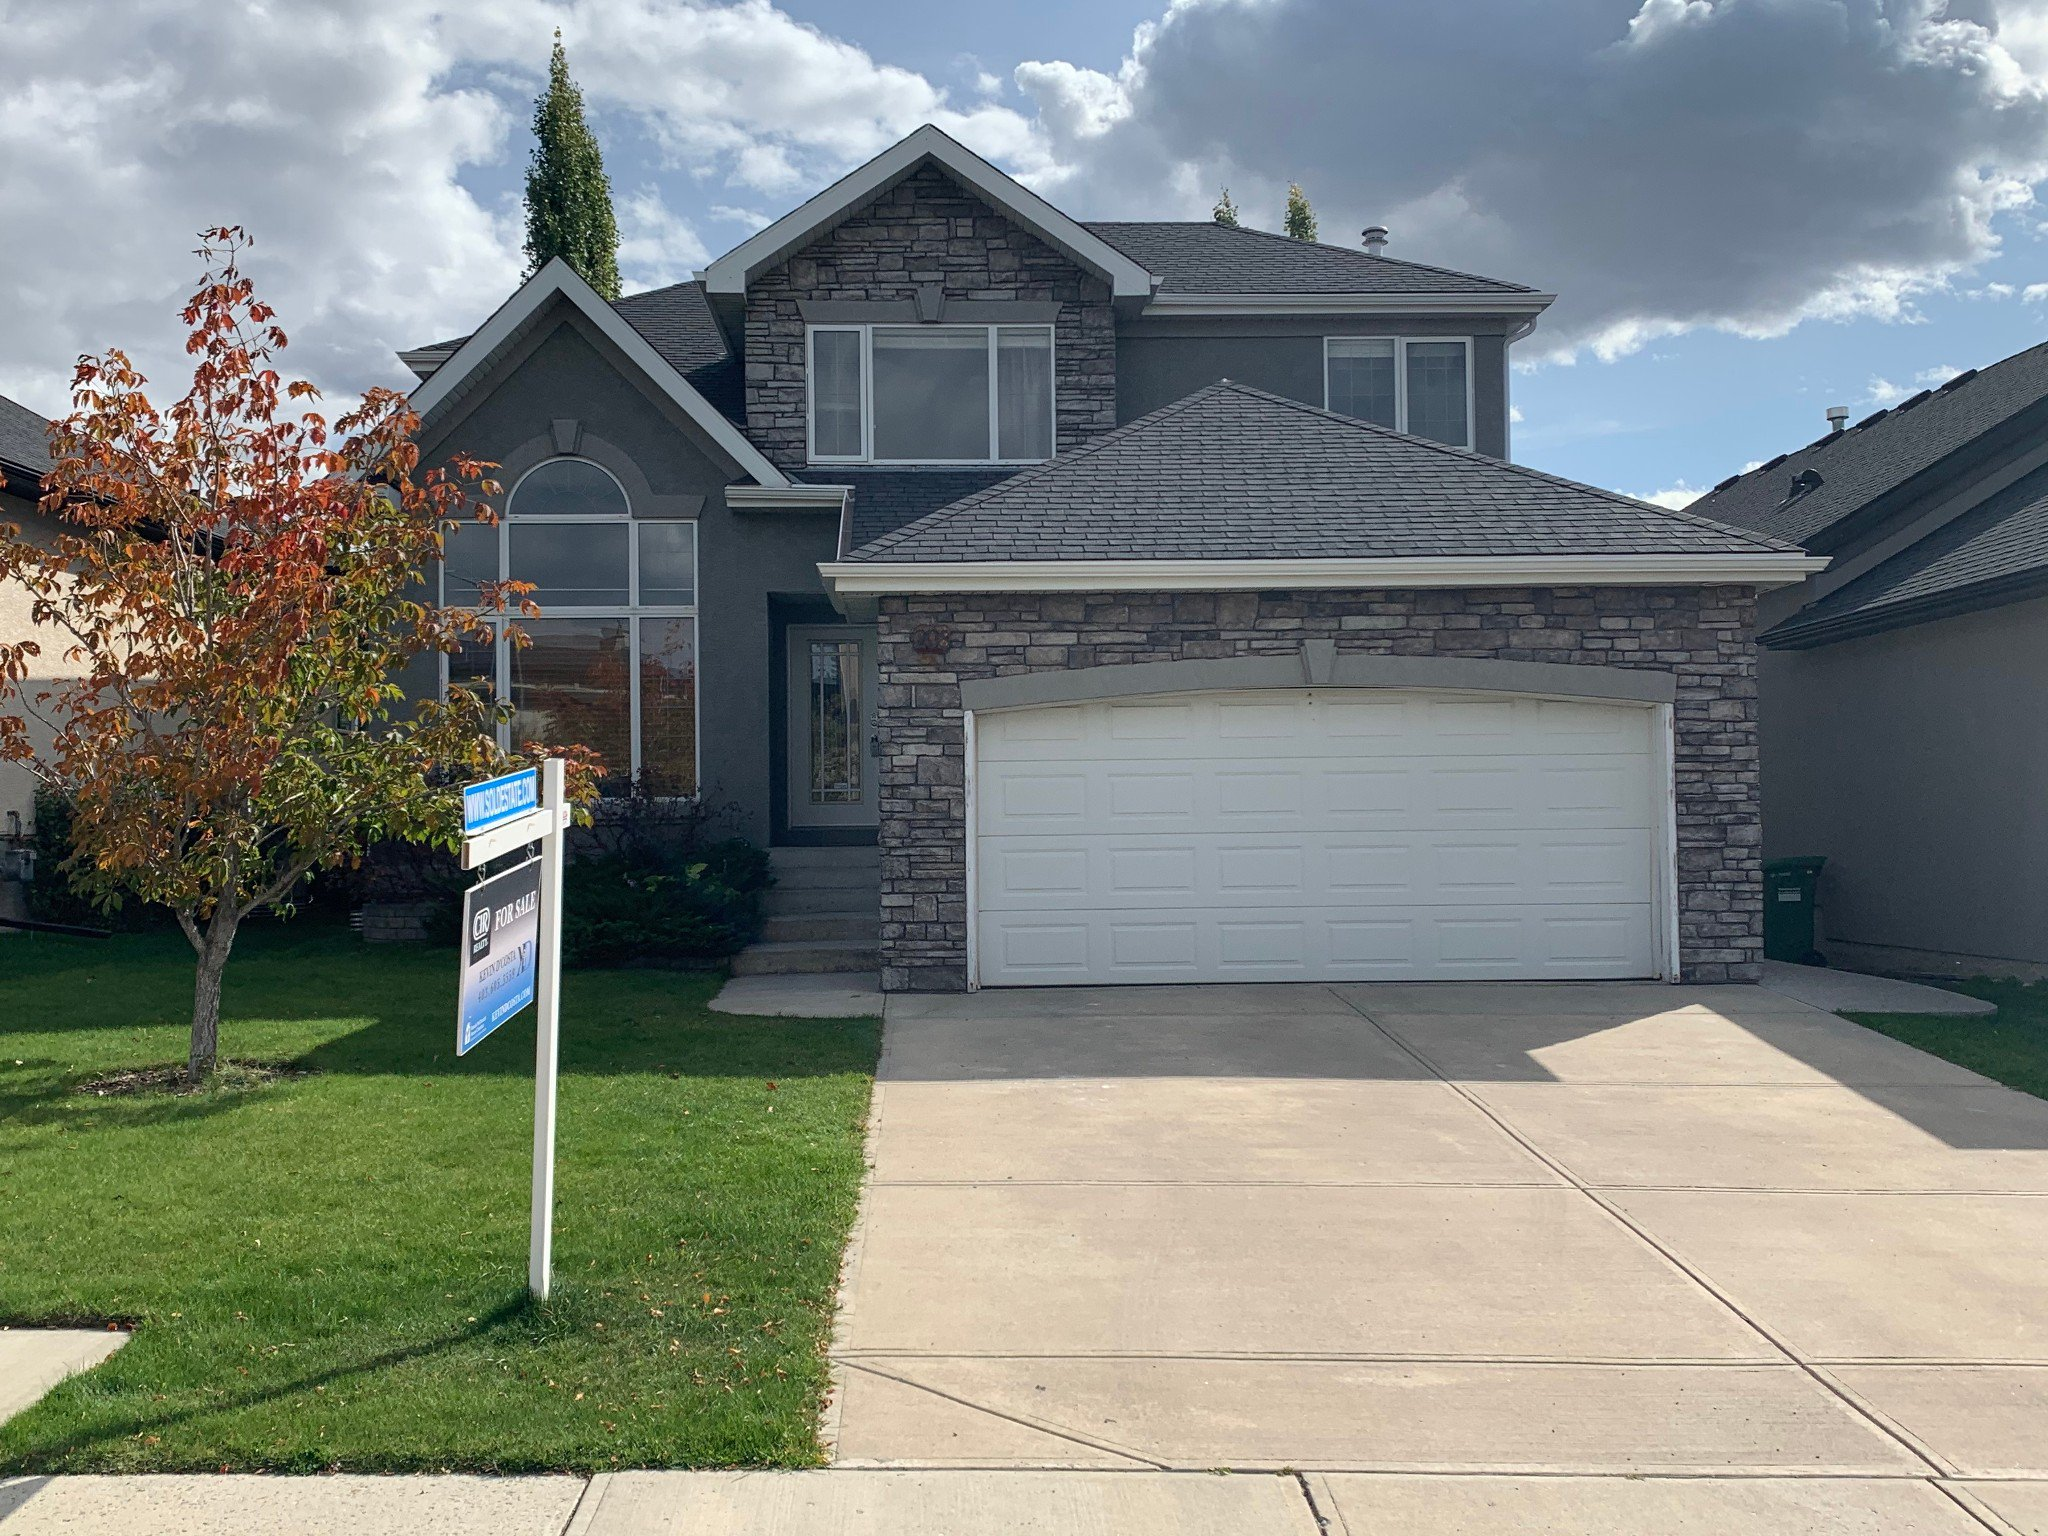 Main Photo: 208 PANORAMA HILLS Way NW in Calgary: Panorama Hills Detached for sale : MLS®# C4258784